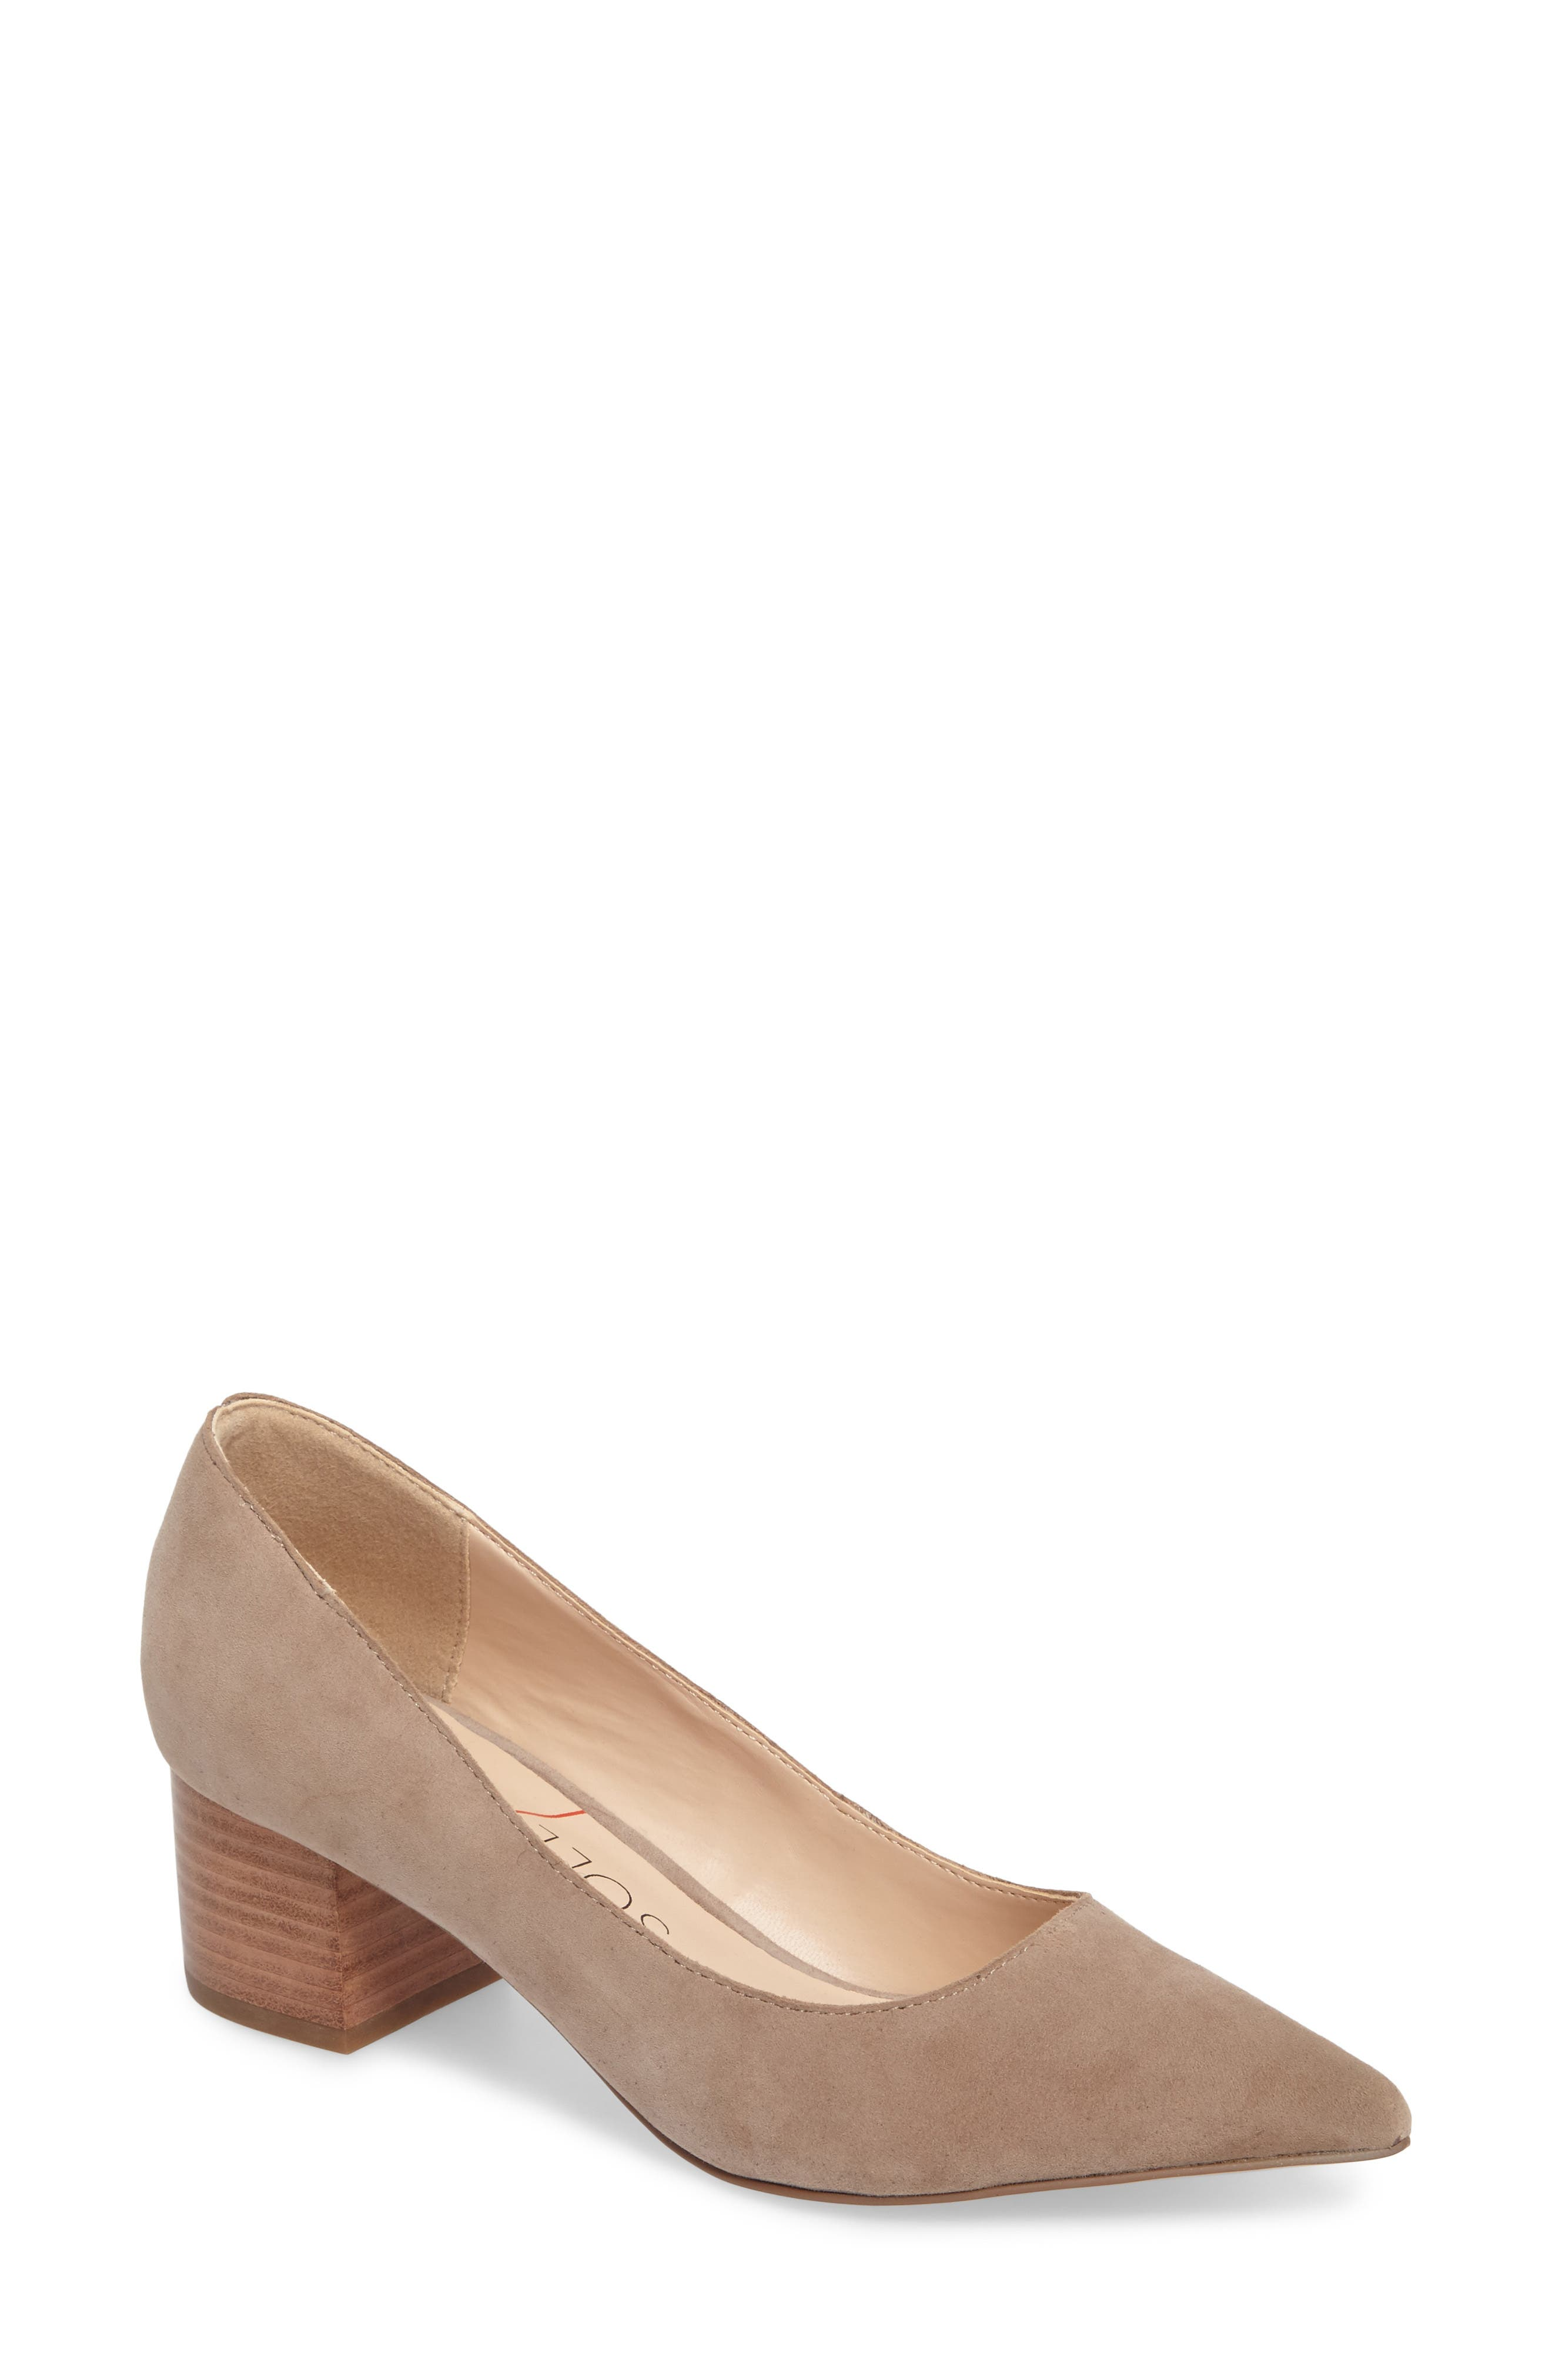 8be49a24373 sole society heels